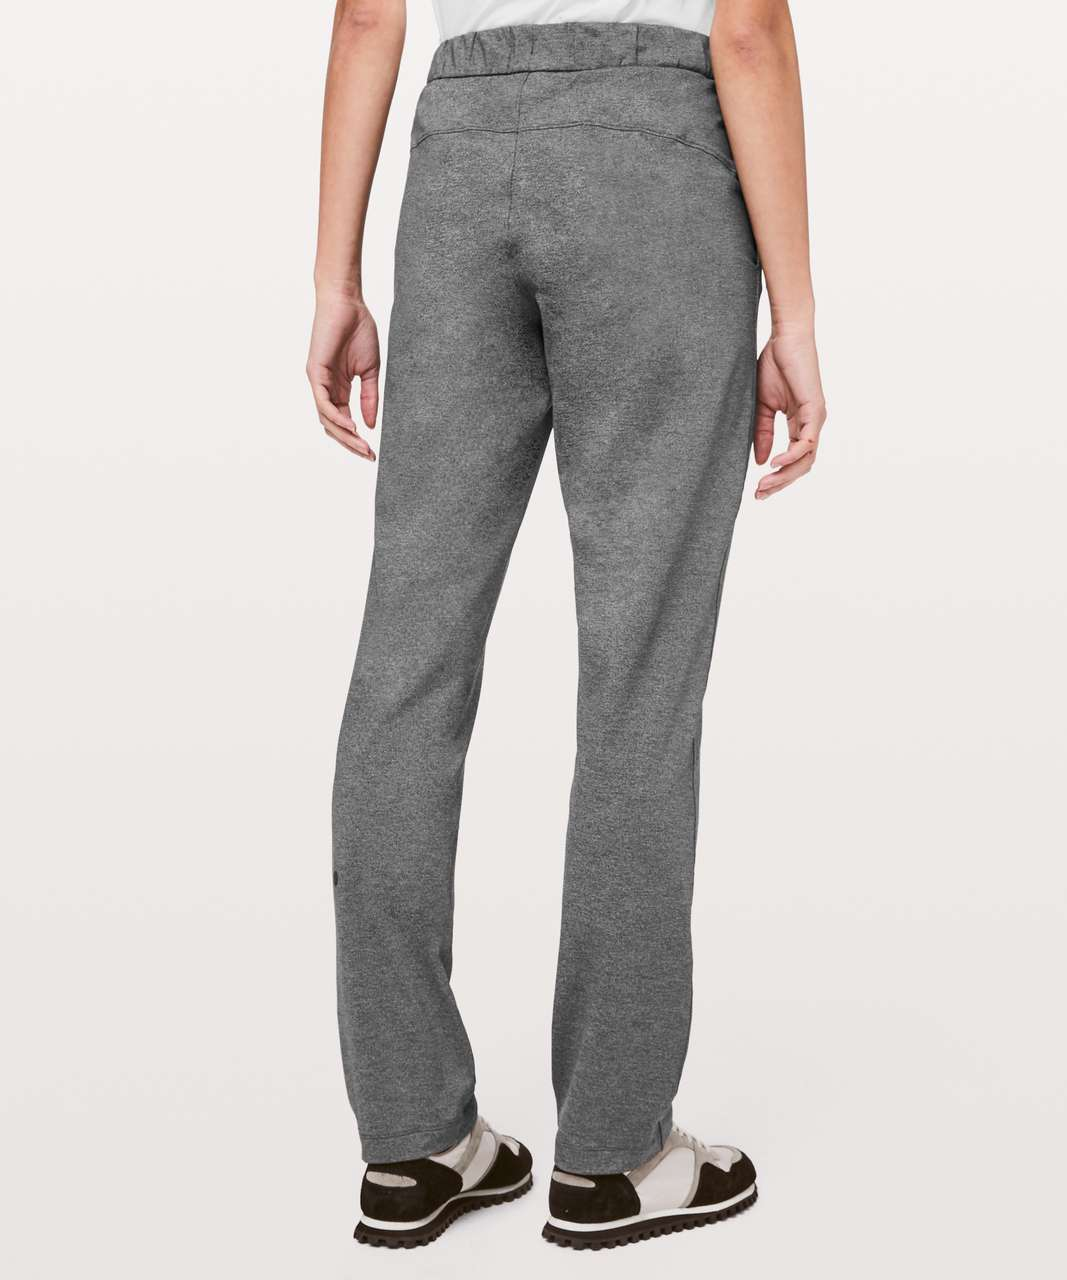 "Lululemon On The Fly Pant Full Length 31"" - Heathered Black"